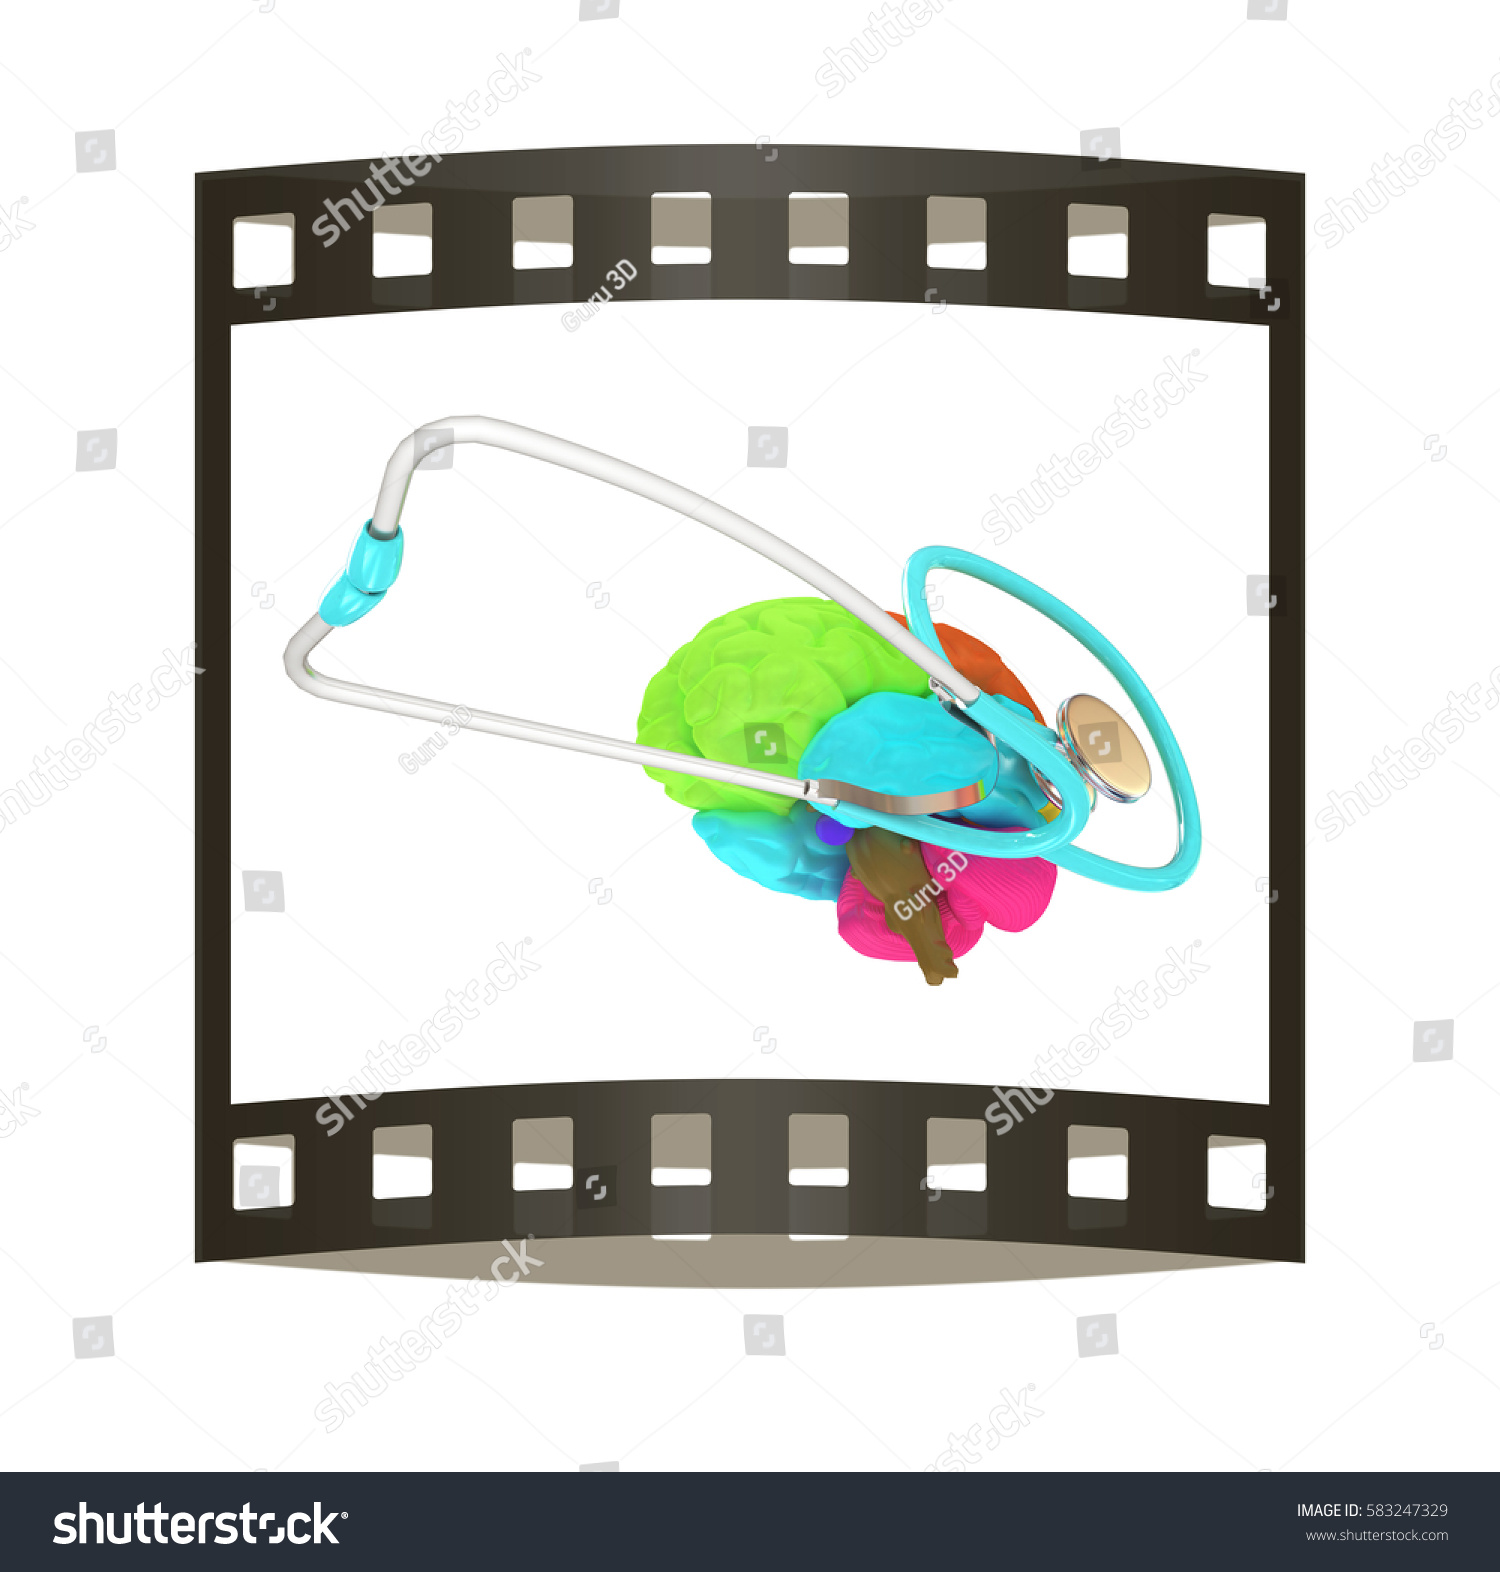 Stethoscope Brain 3 D Illustration Film Strip Stock Remote Concept Diagram And 3d The